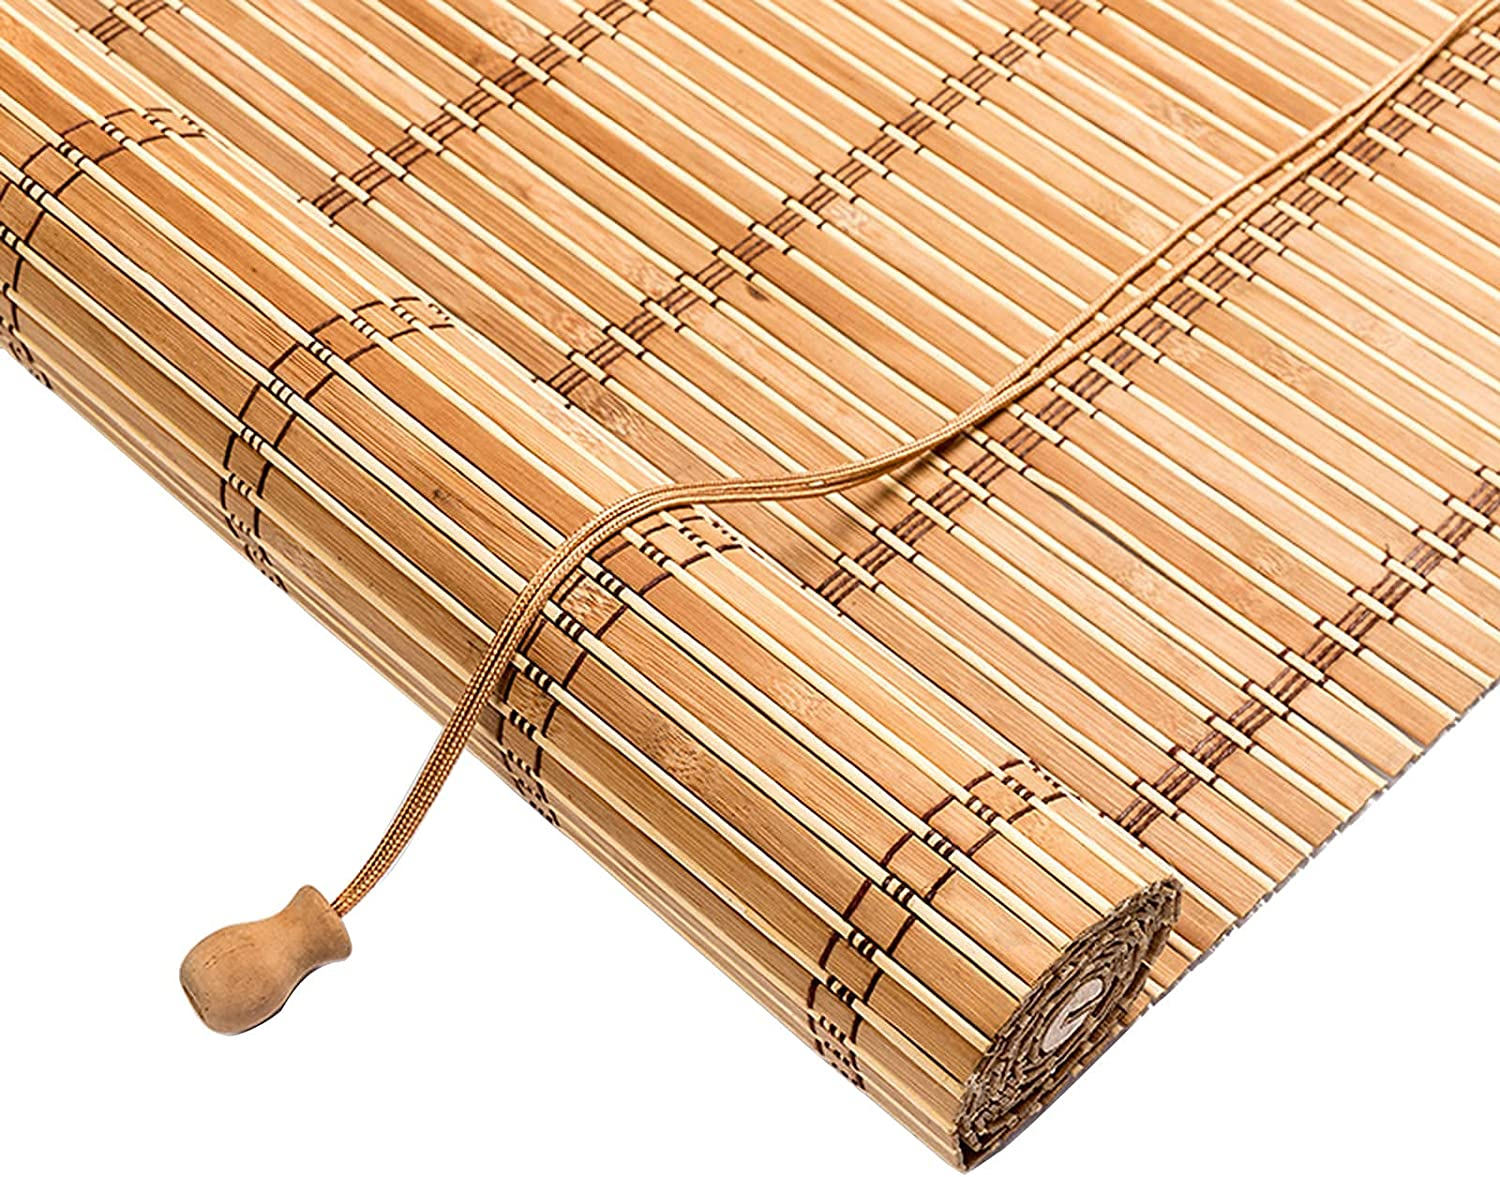 Home Bamboo Roll Up Window Blind Ranking TOP20 Shade Store W100xH200cm 39x79in Sun